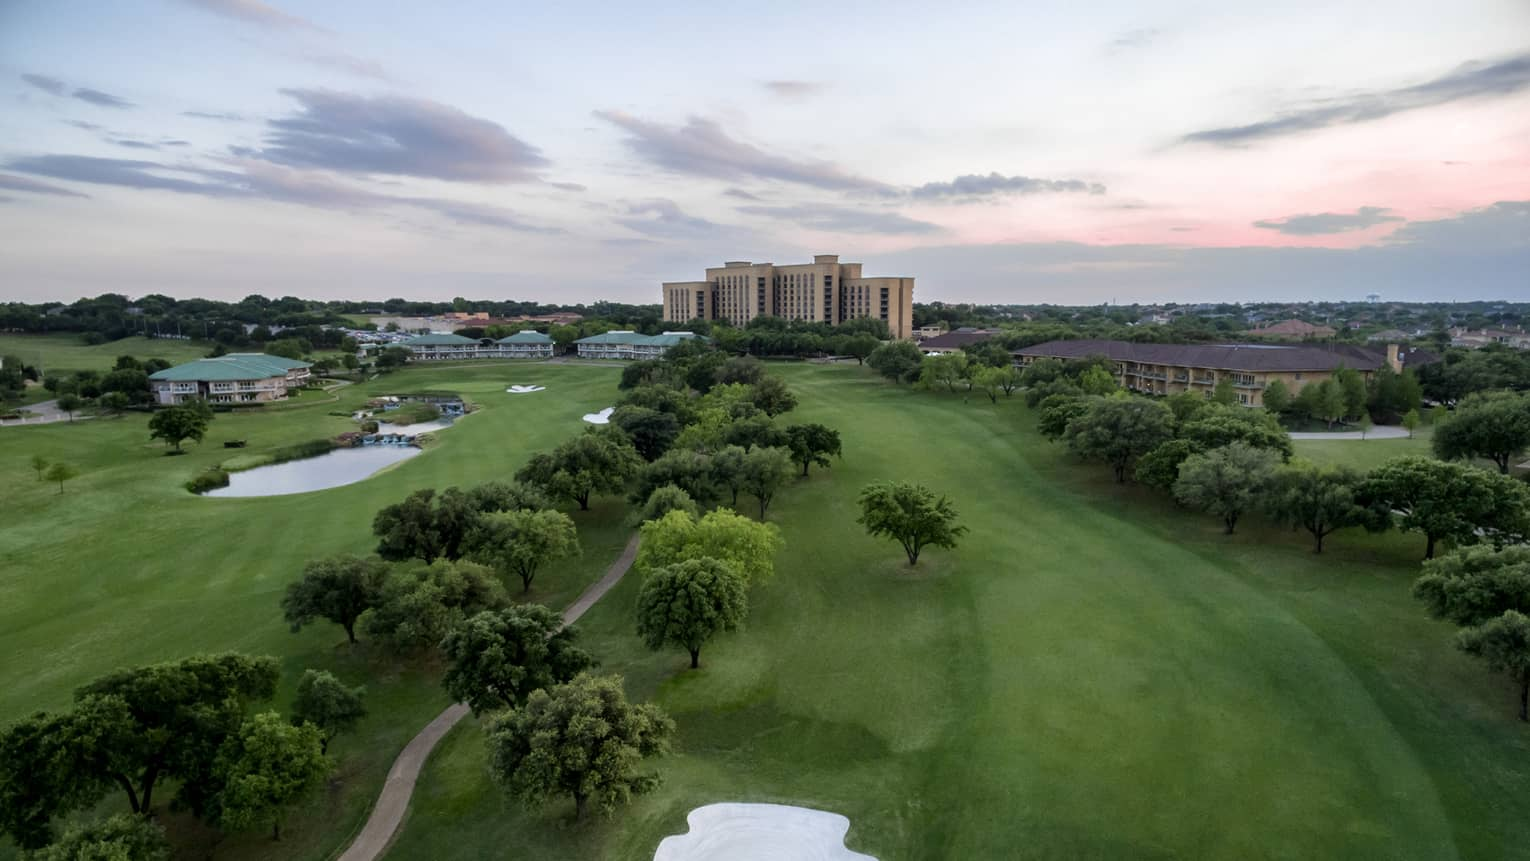 Aerial view of TPC Four Seasons Las Colinas golf course, small pond, trees and hotel highrise in distance